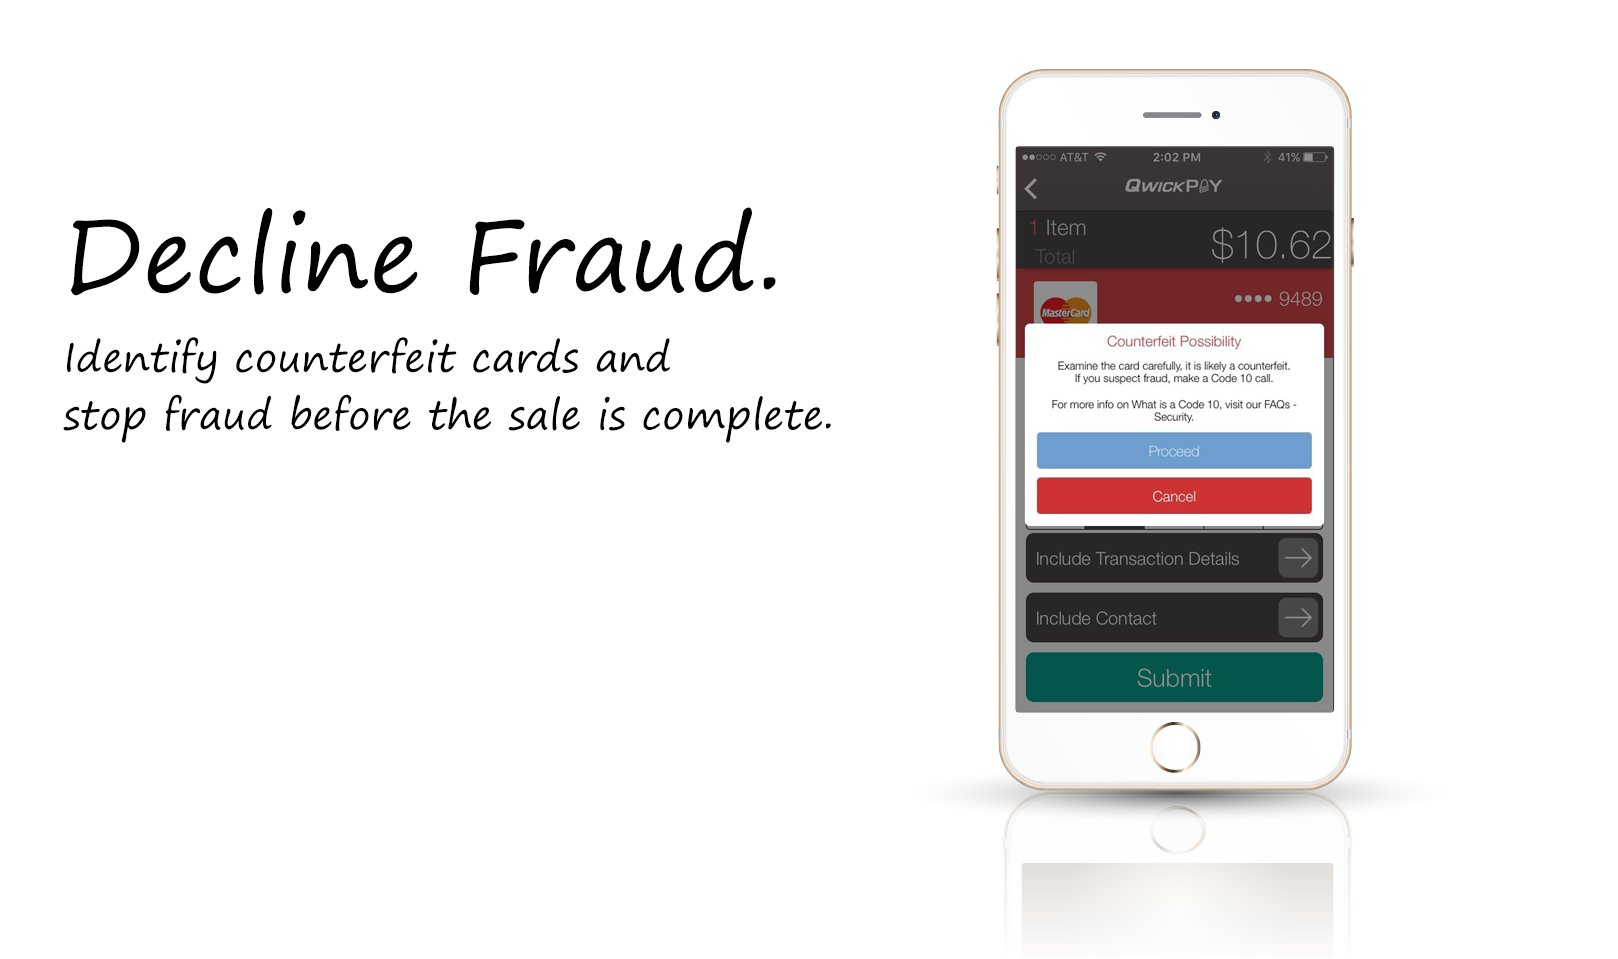 QwickPAY Decline Counterfeit Card Sales